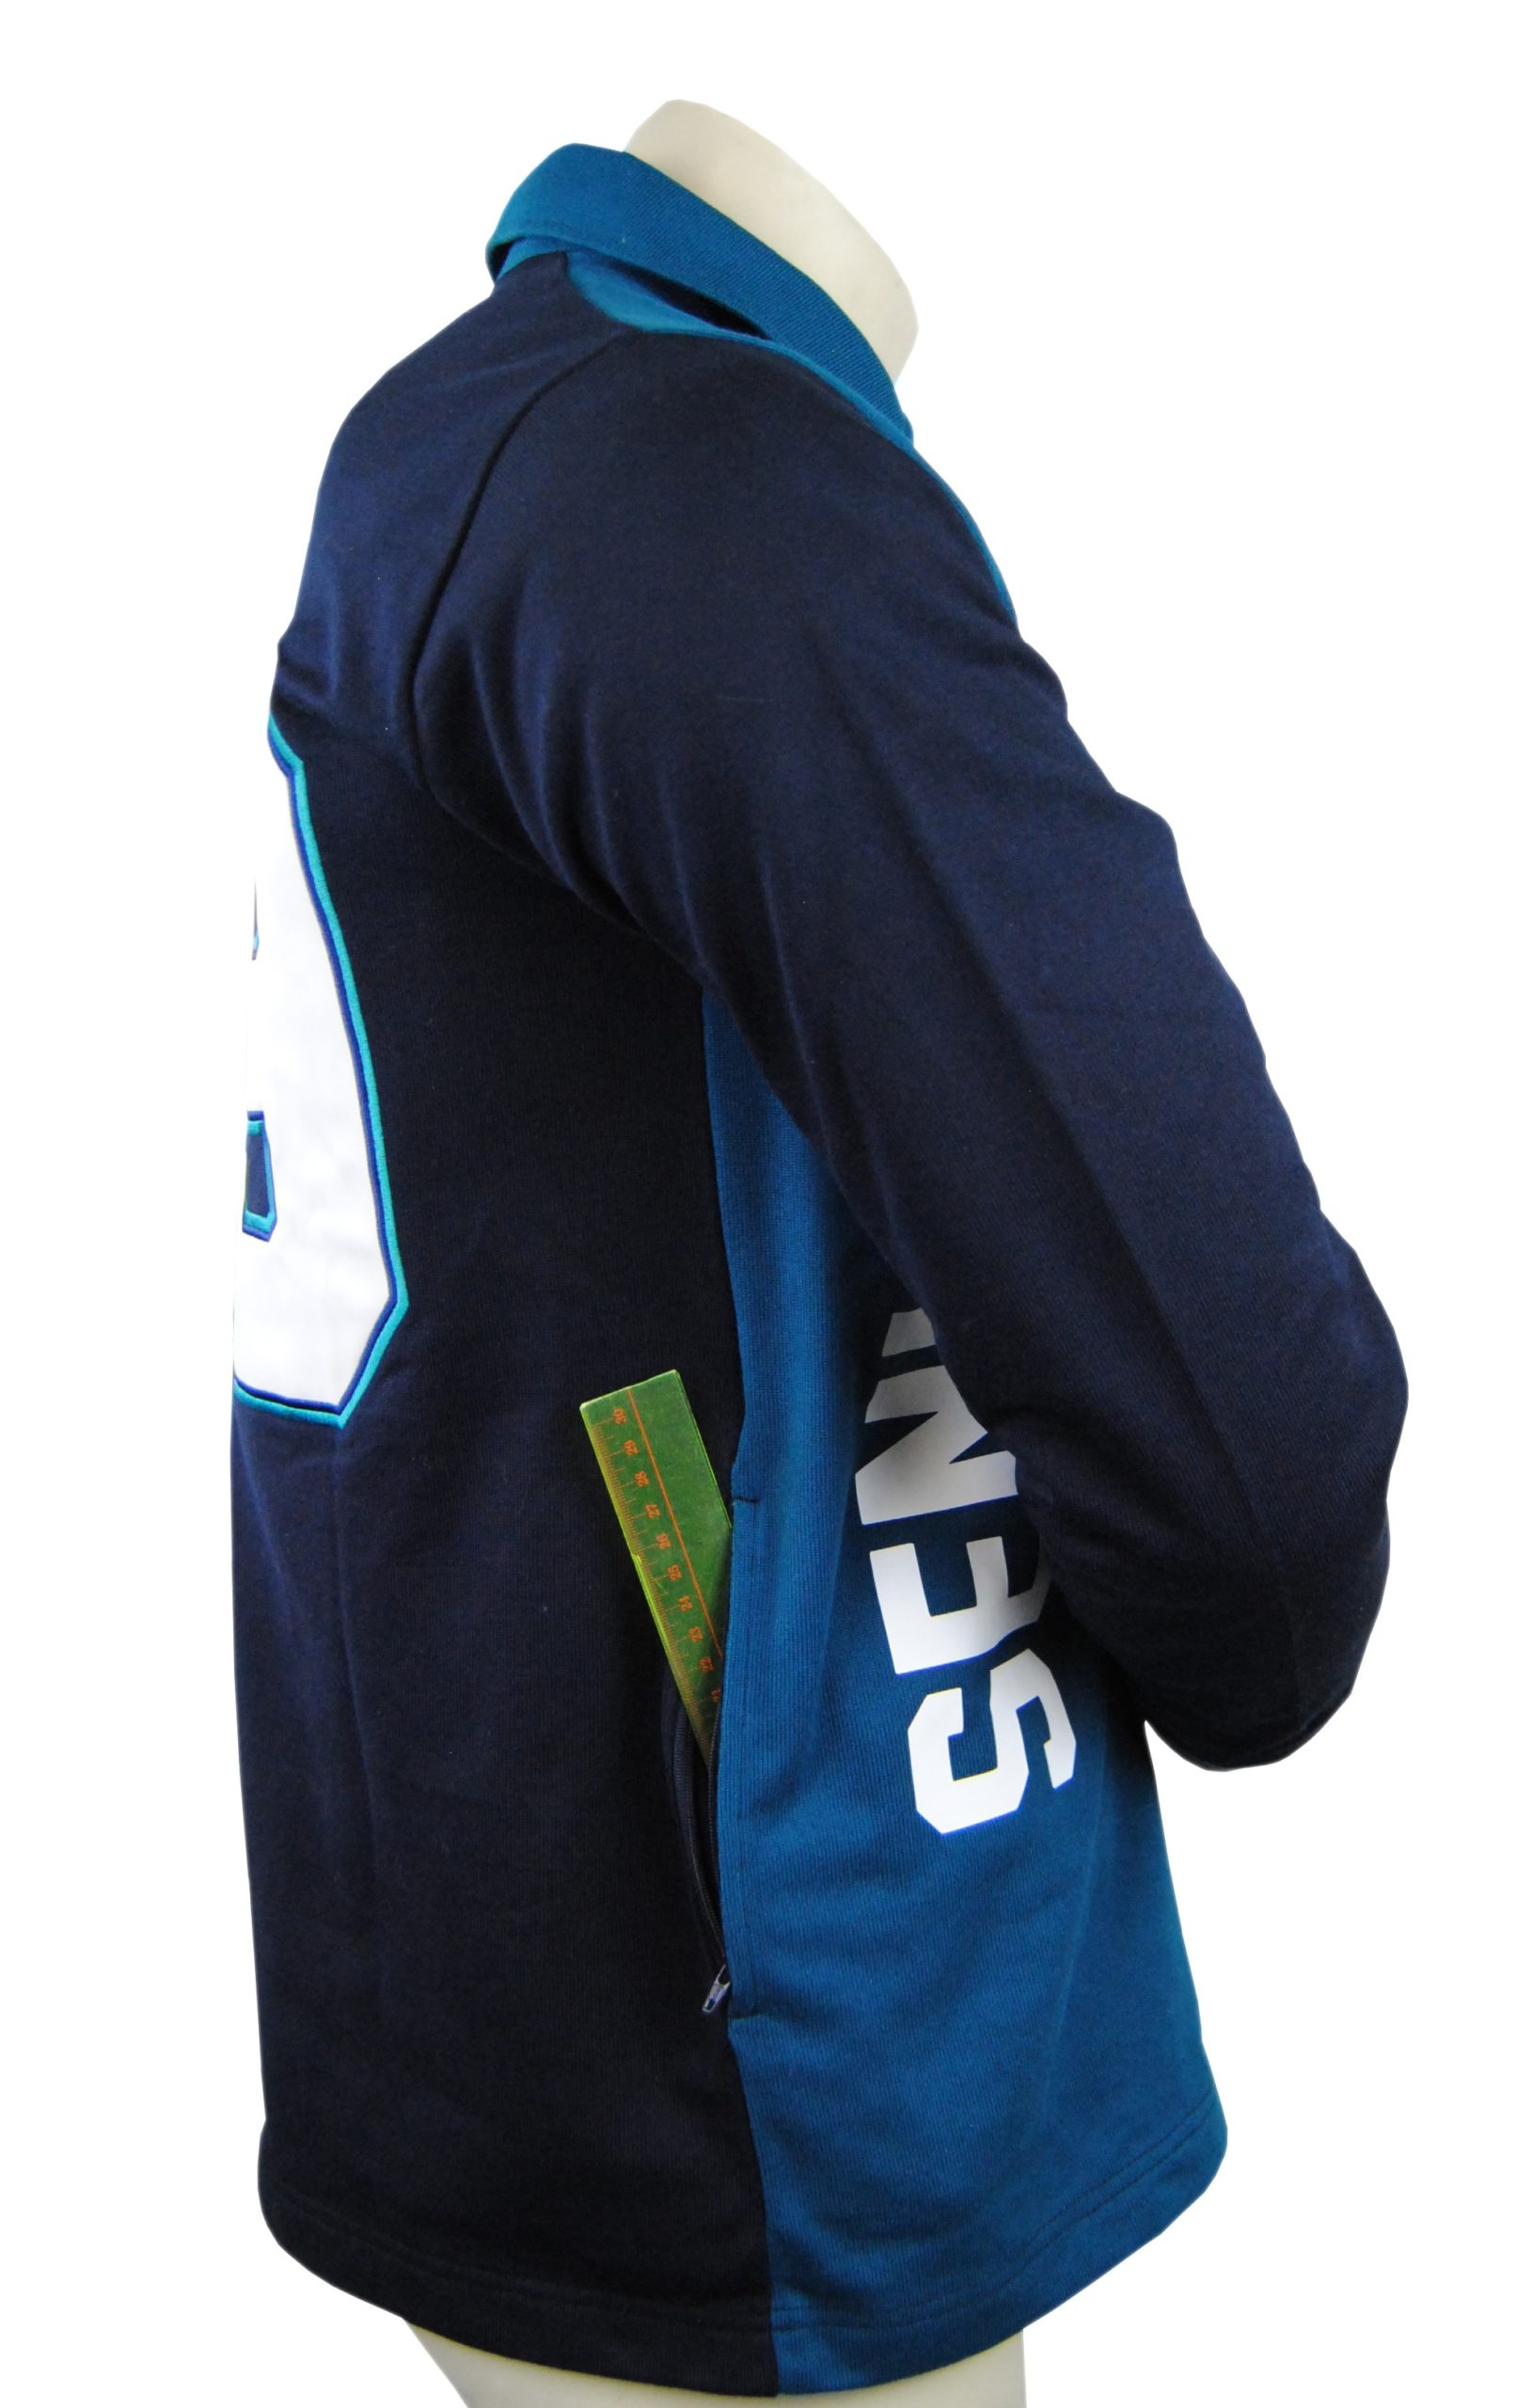 year 12 jersey with zippered pockets